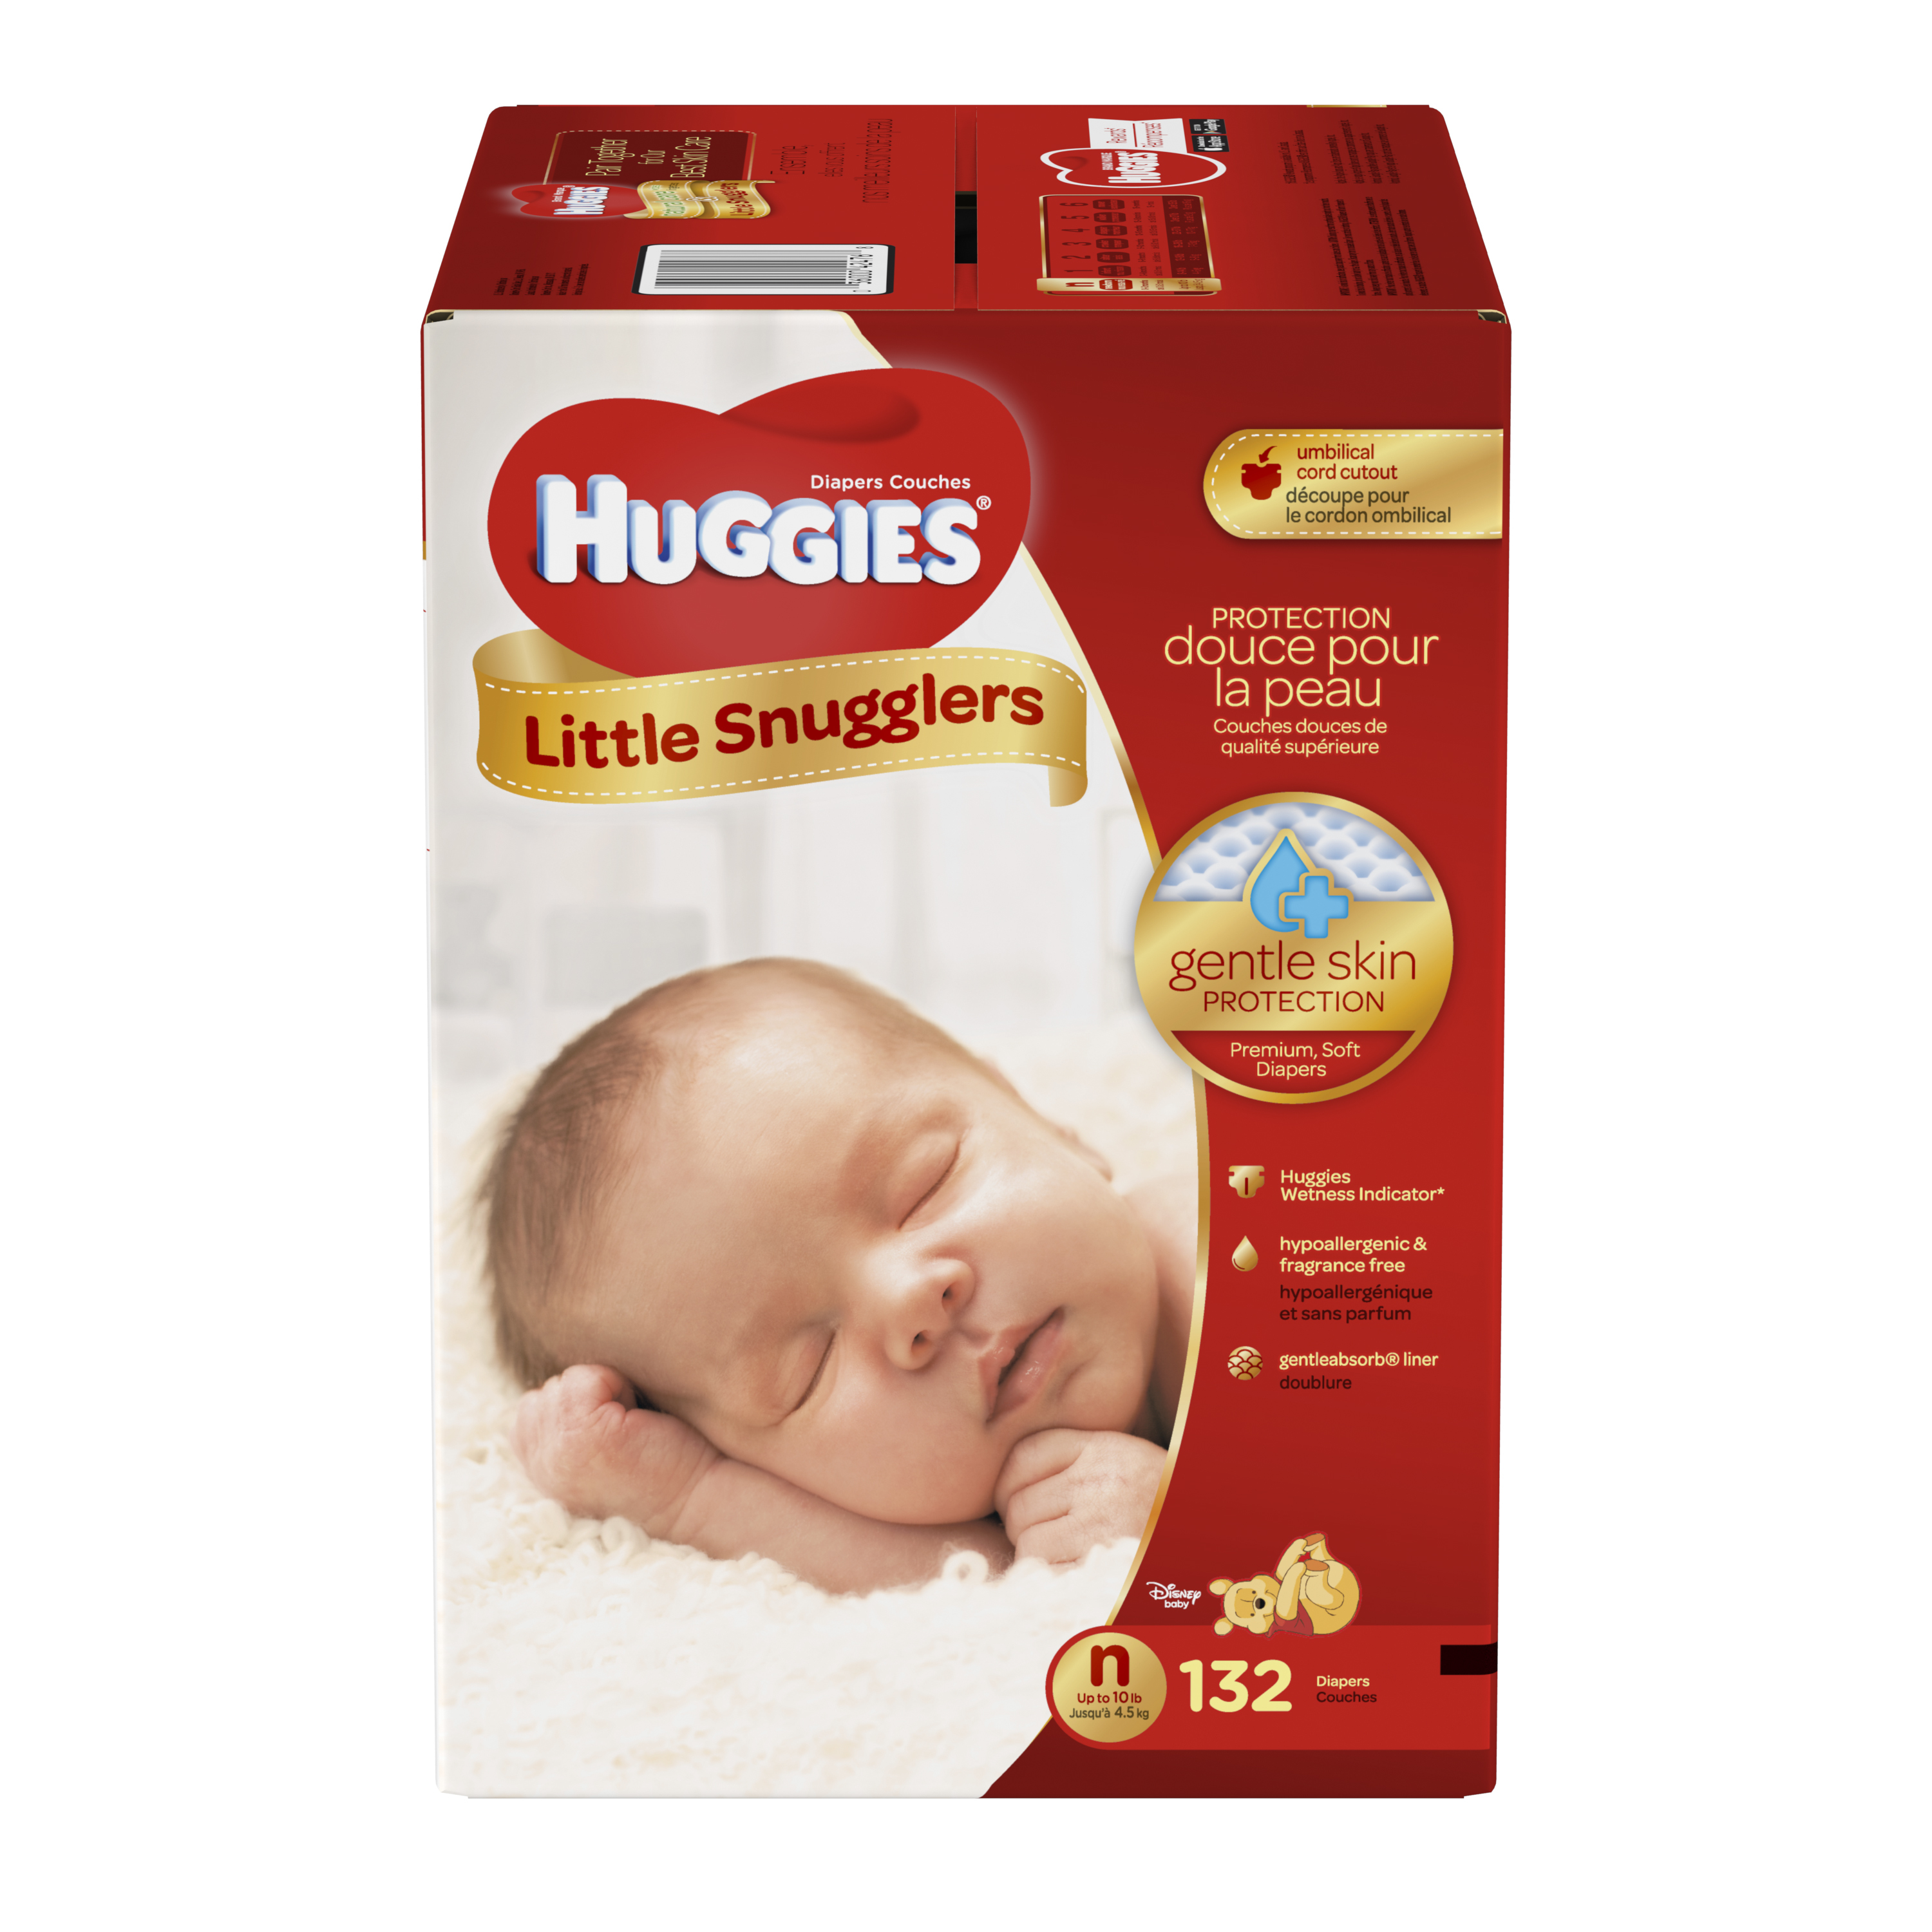 HUGGIES Little Snugglers Diapers (Choose Diaper Size and Count)